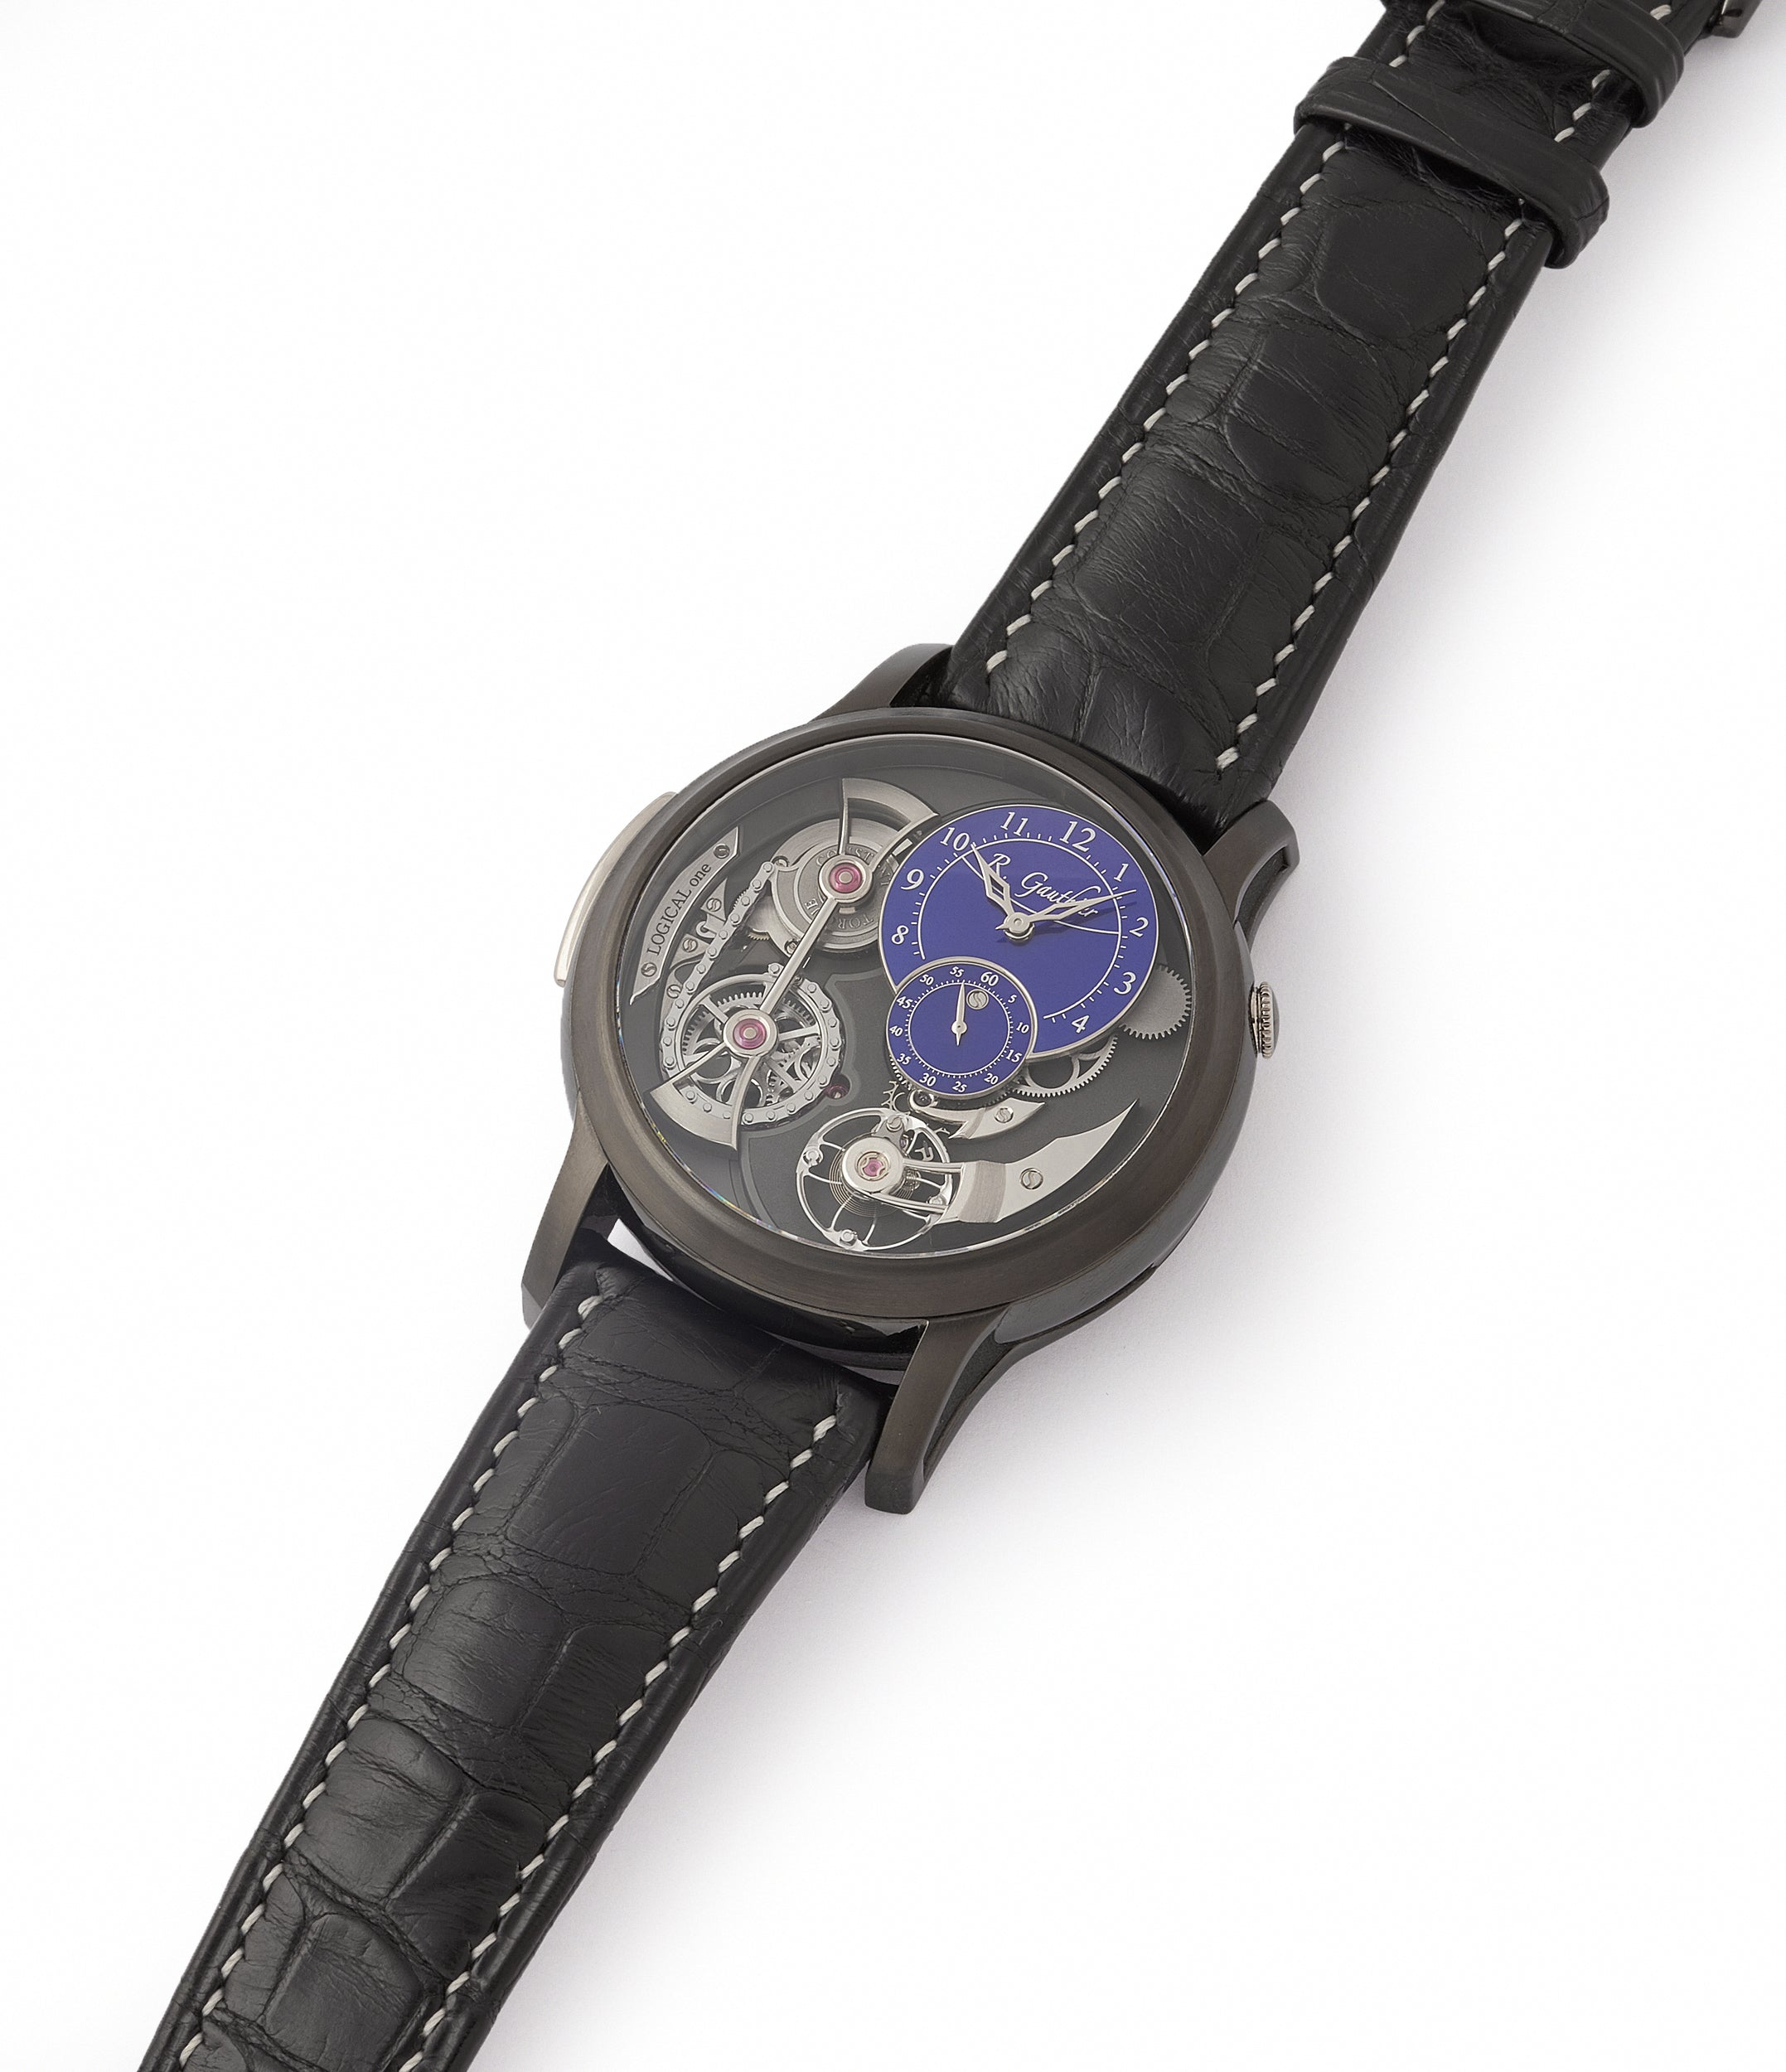 selling Romain Gauthier Limited Edition Logical One BTG titanium watch blue enamel dial for sale online at A Collected Man London UK specialist of independent watchmakers